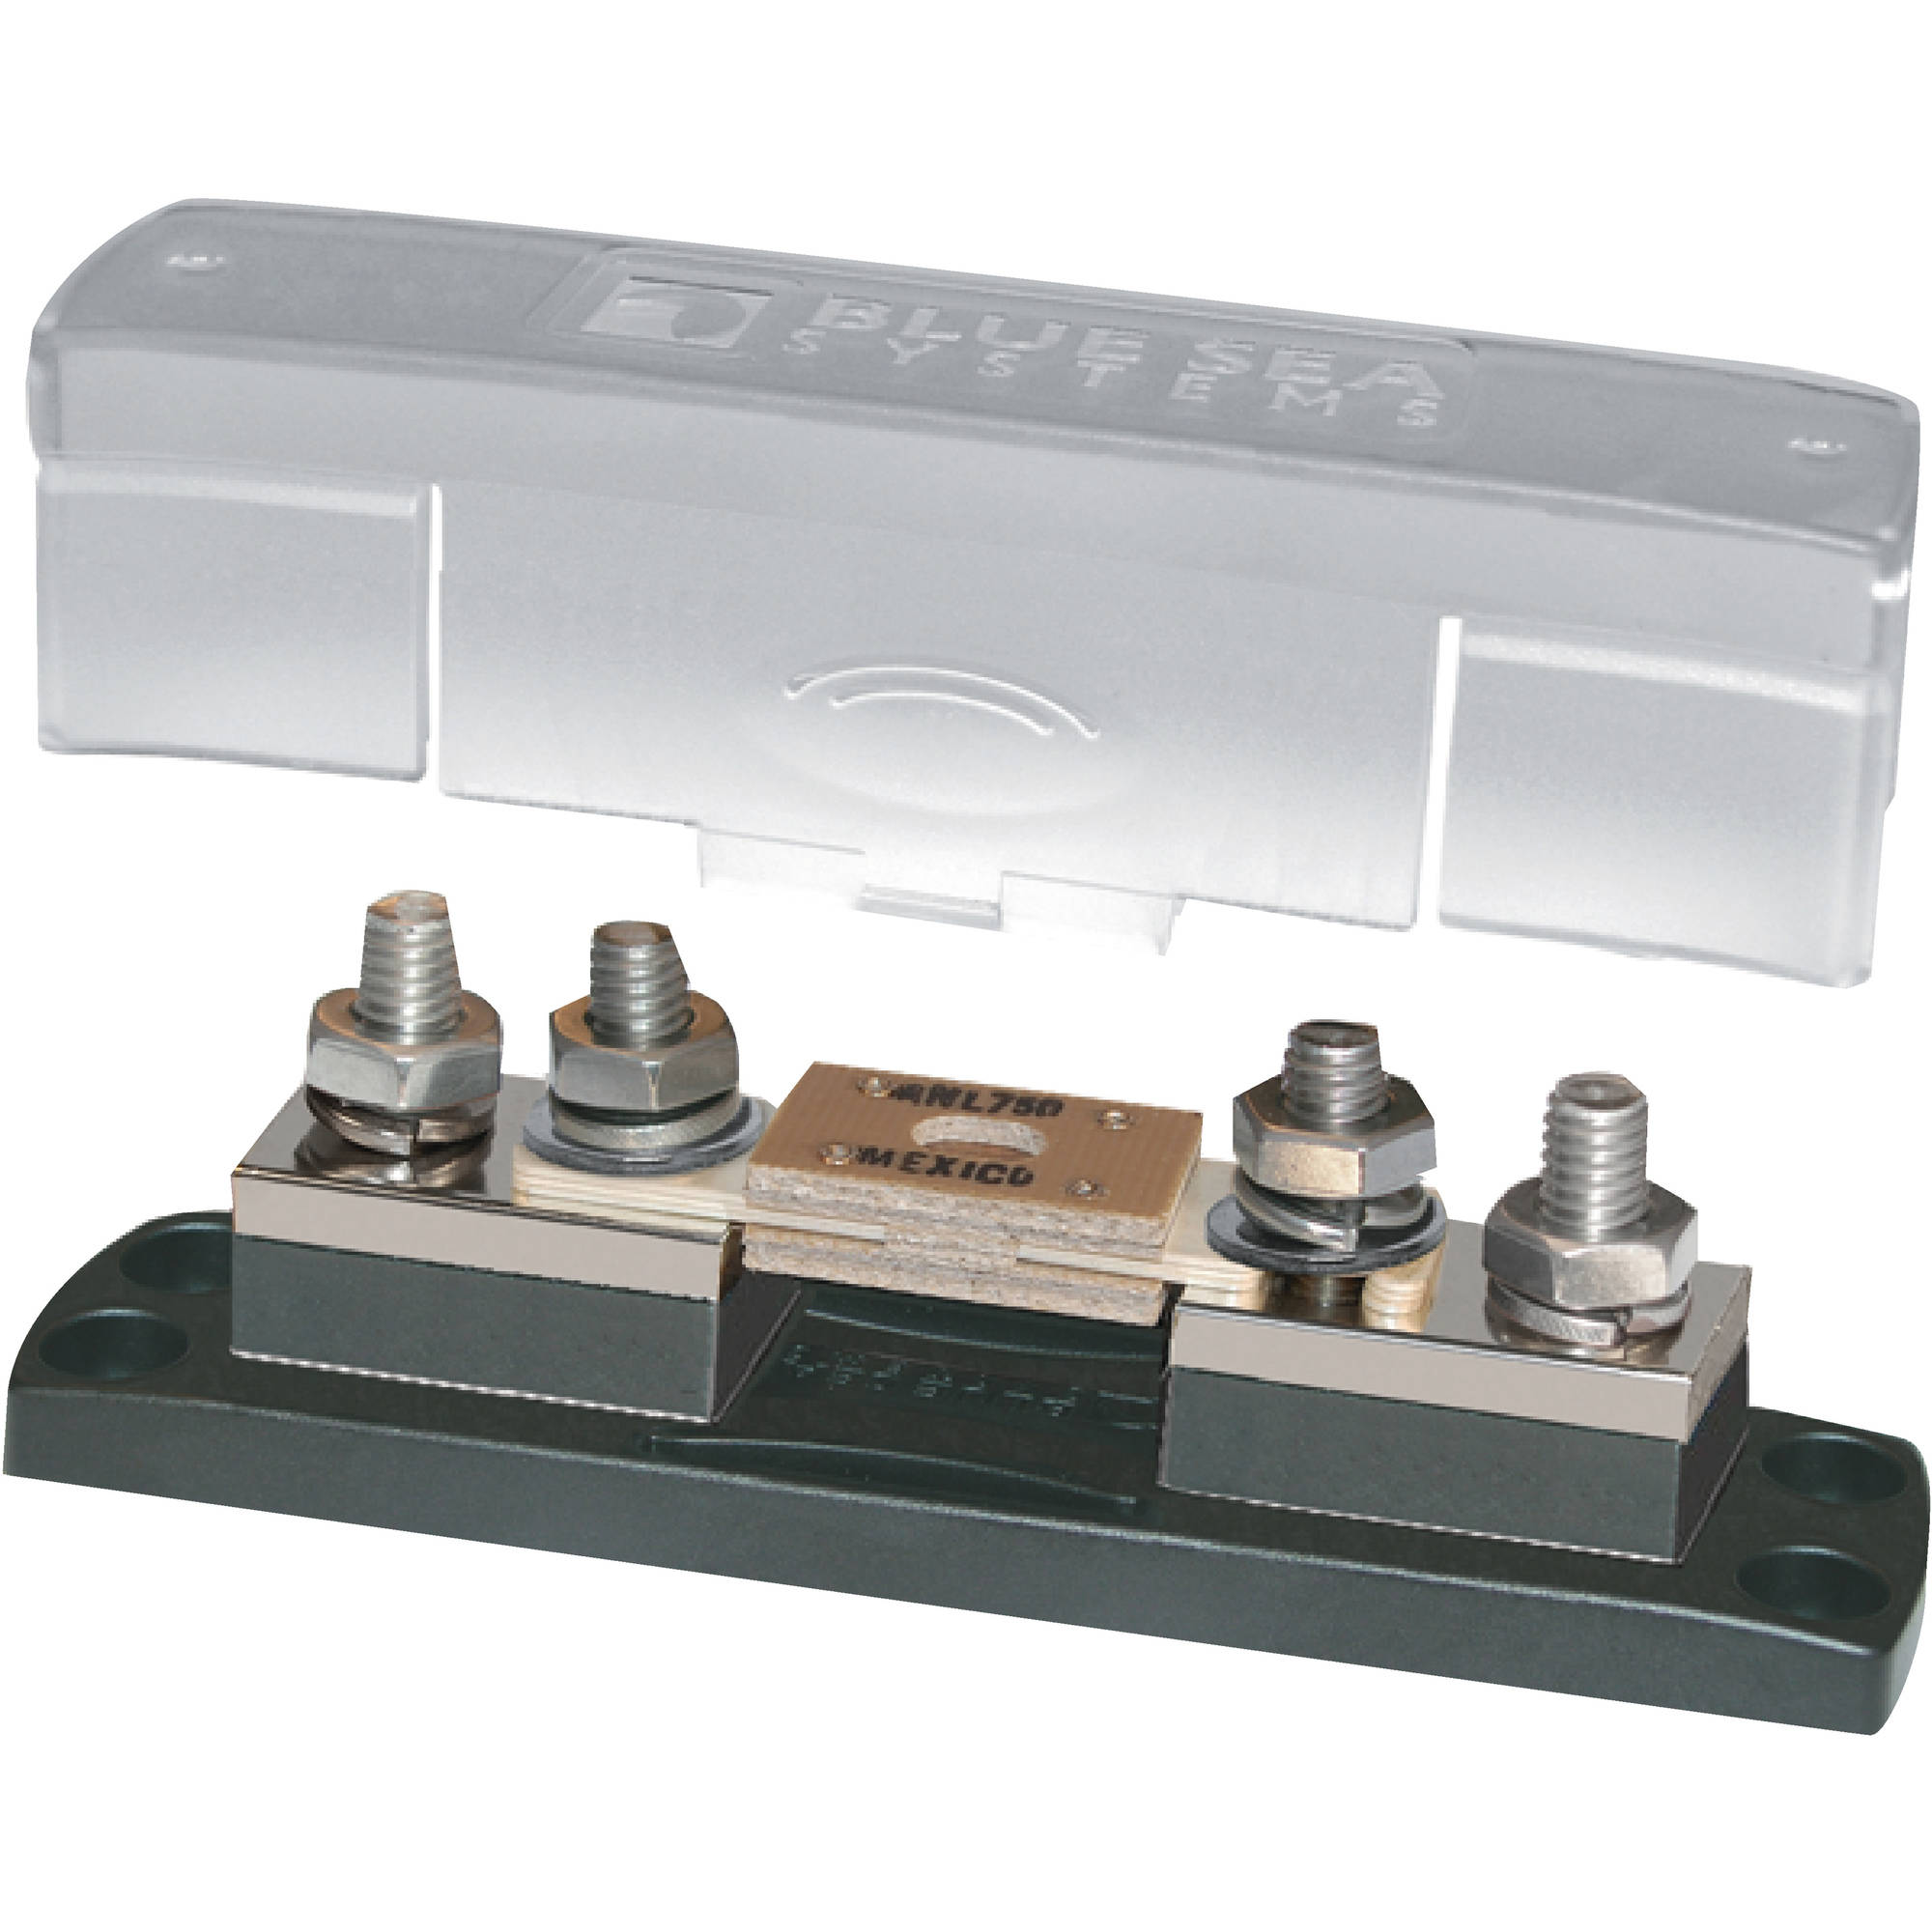 Blue Sea Systems 5503 ANL Fuse Block with Insulating Cover, 35 to 750A